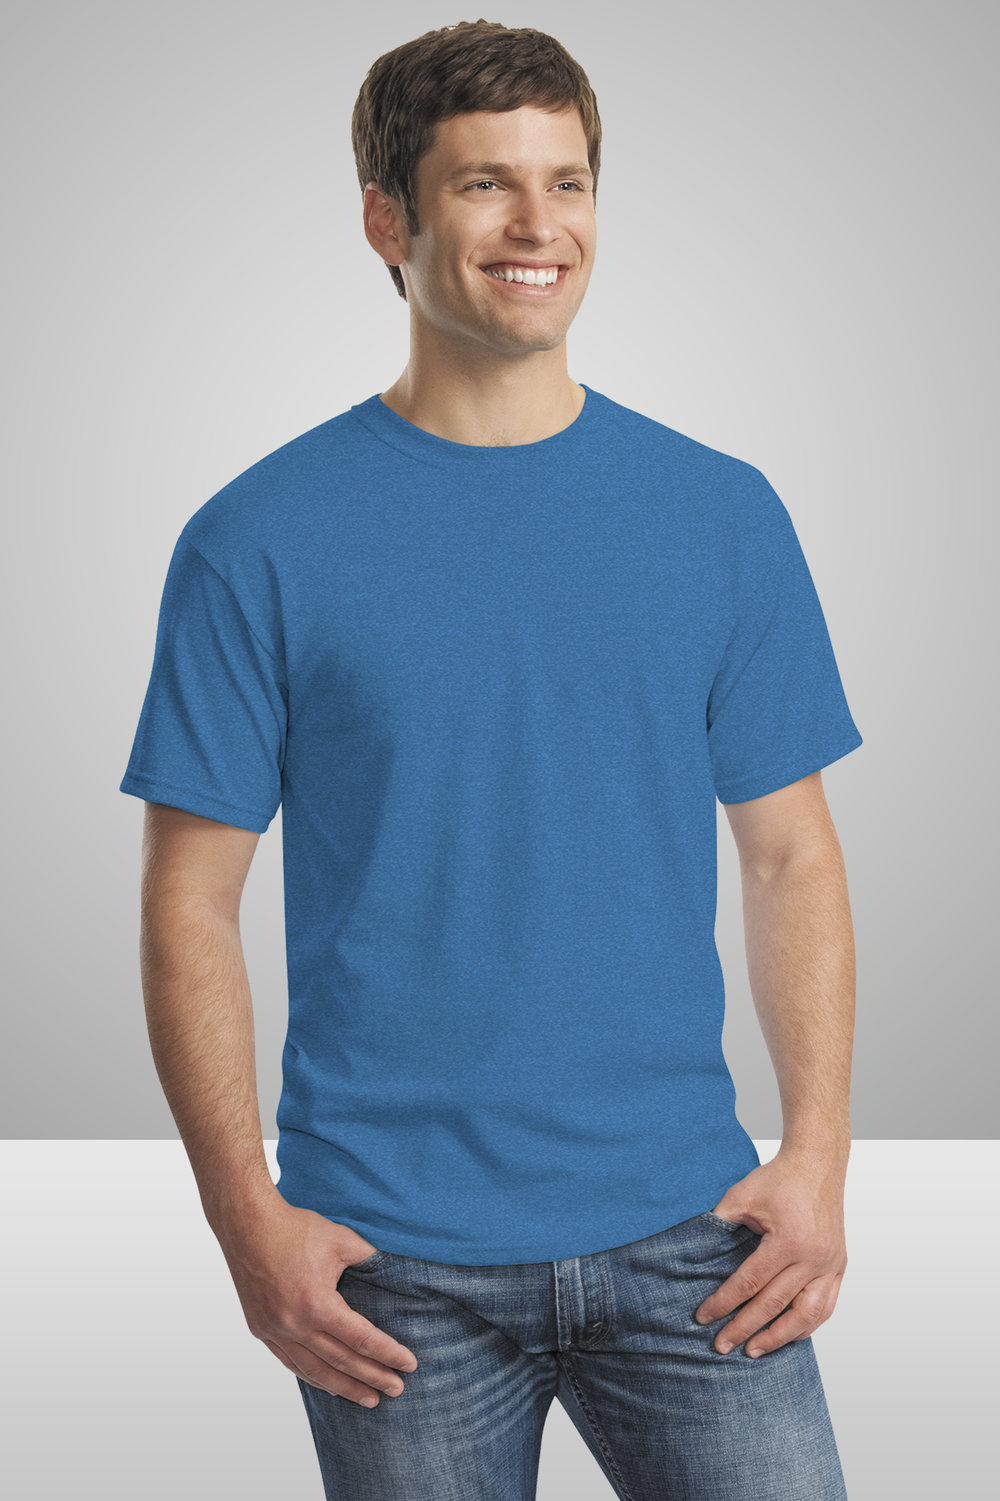 Gildan Standard T-Shirt    $7.42 each for 25 items  one color front or back